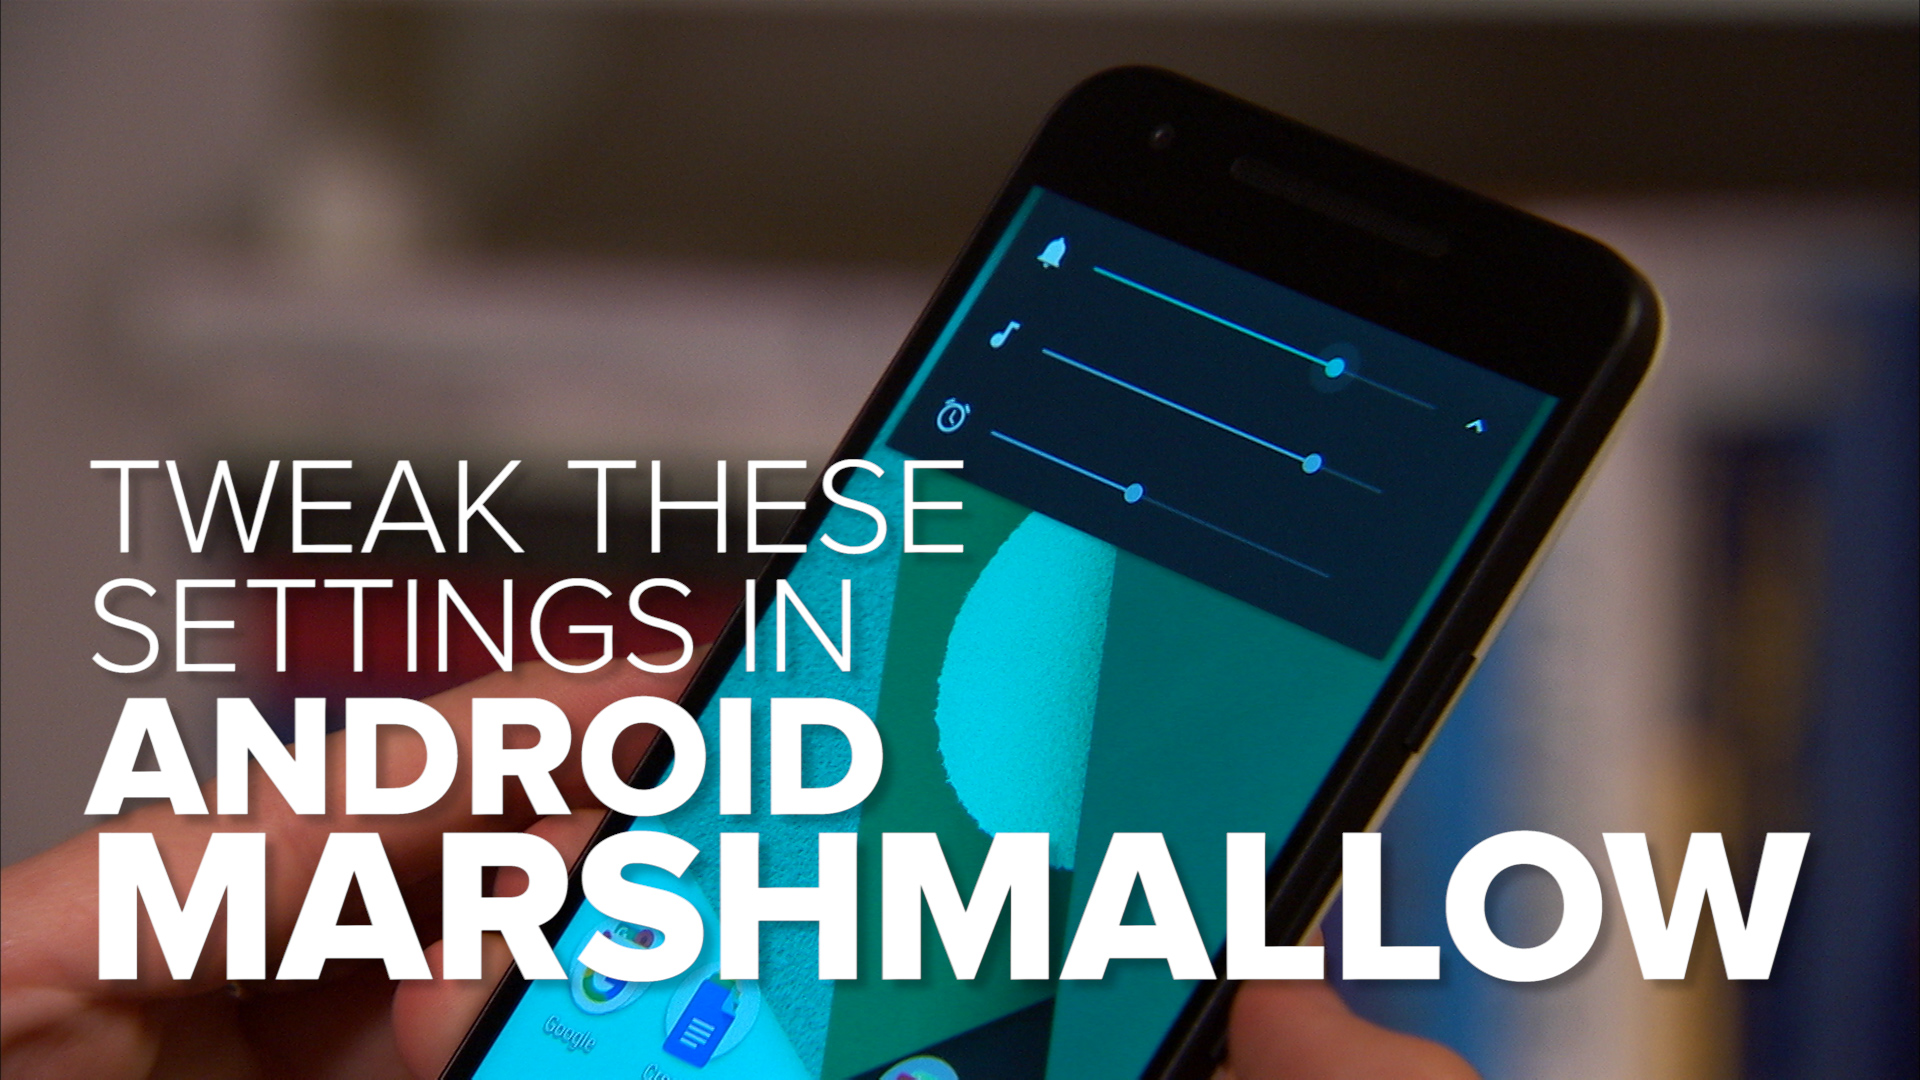 Video: Five settings to tweak in Android Marshmallow